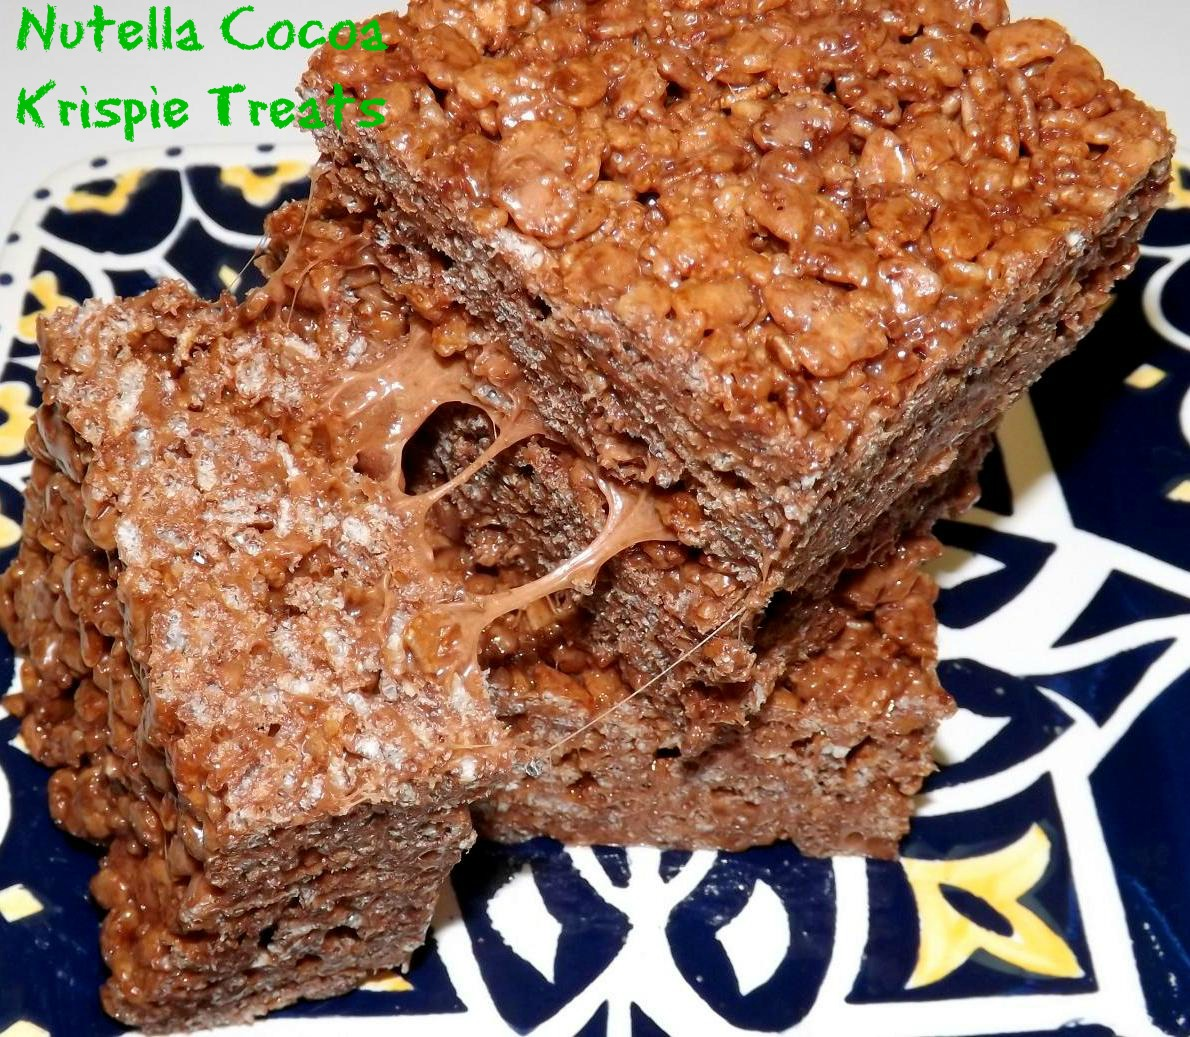 Nutella Cocoa Krispies Treats | From Cupcakes To Caviar